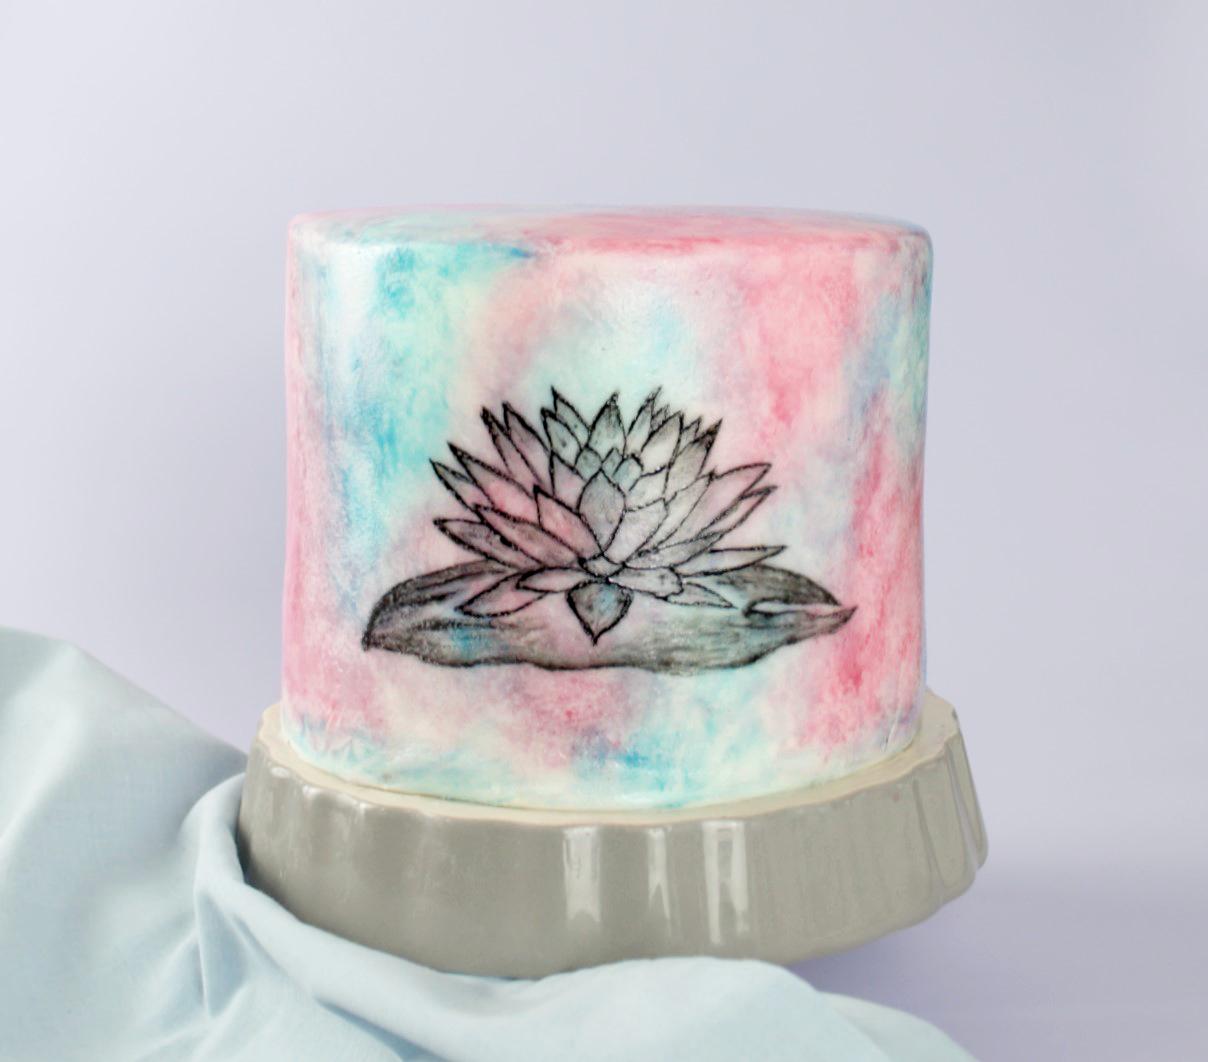 How To Make A Watercolour Cake